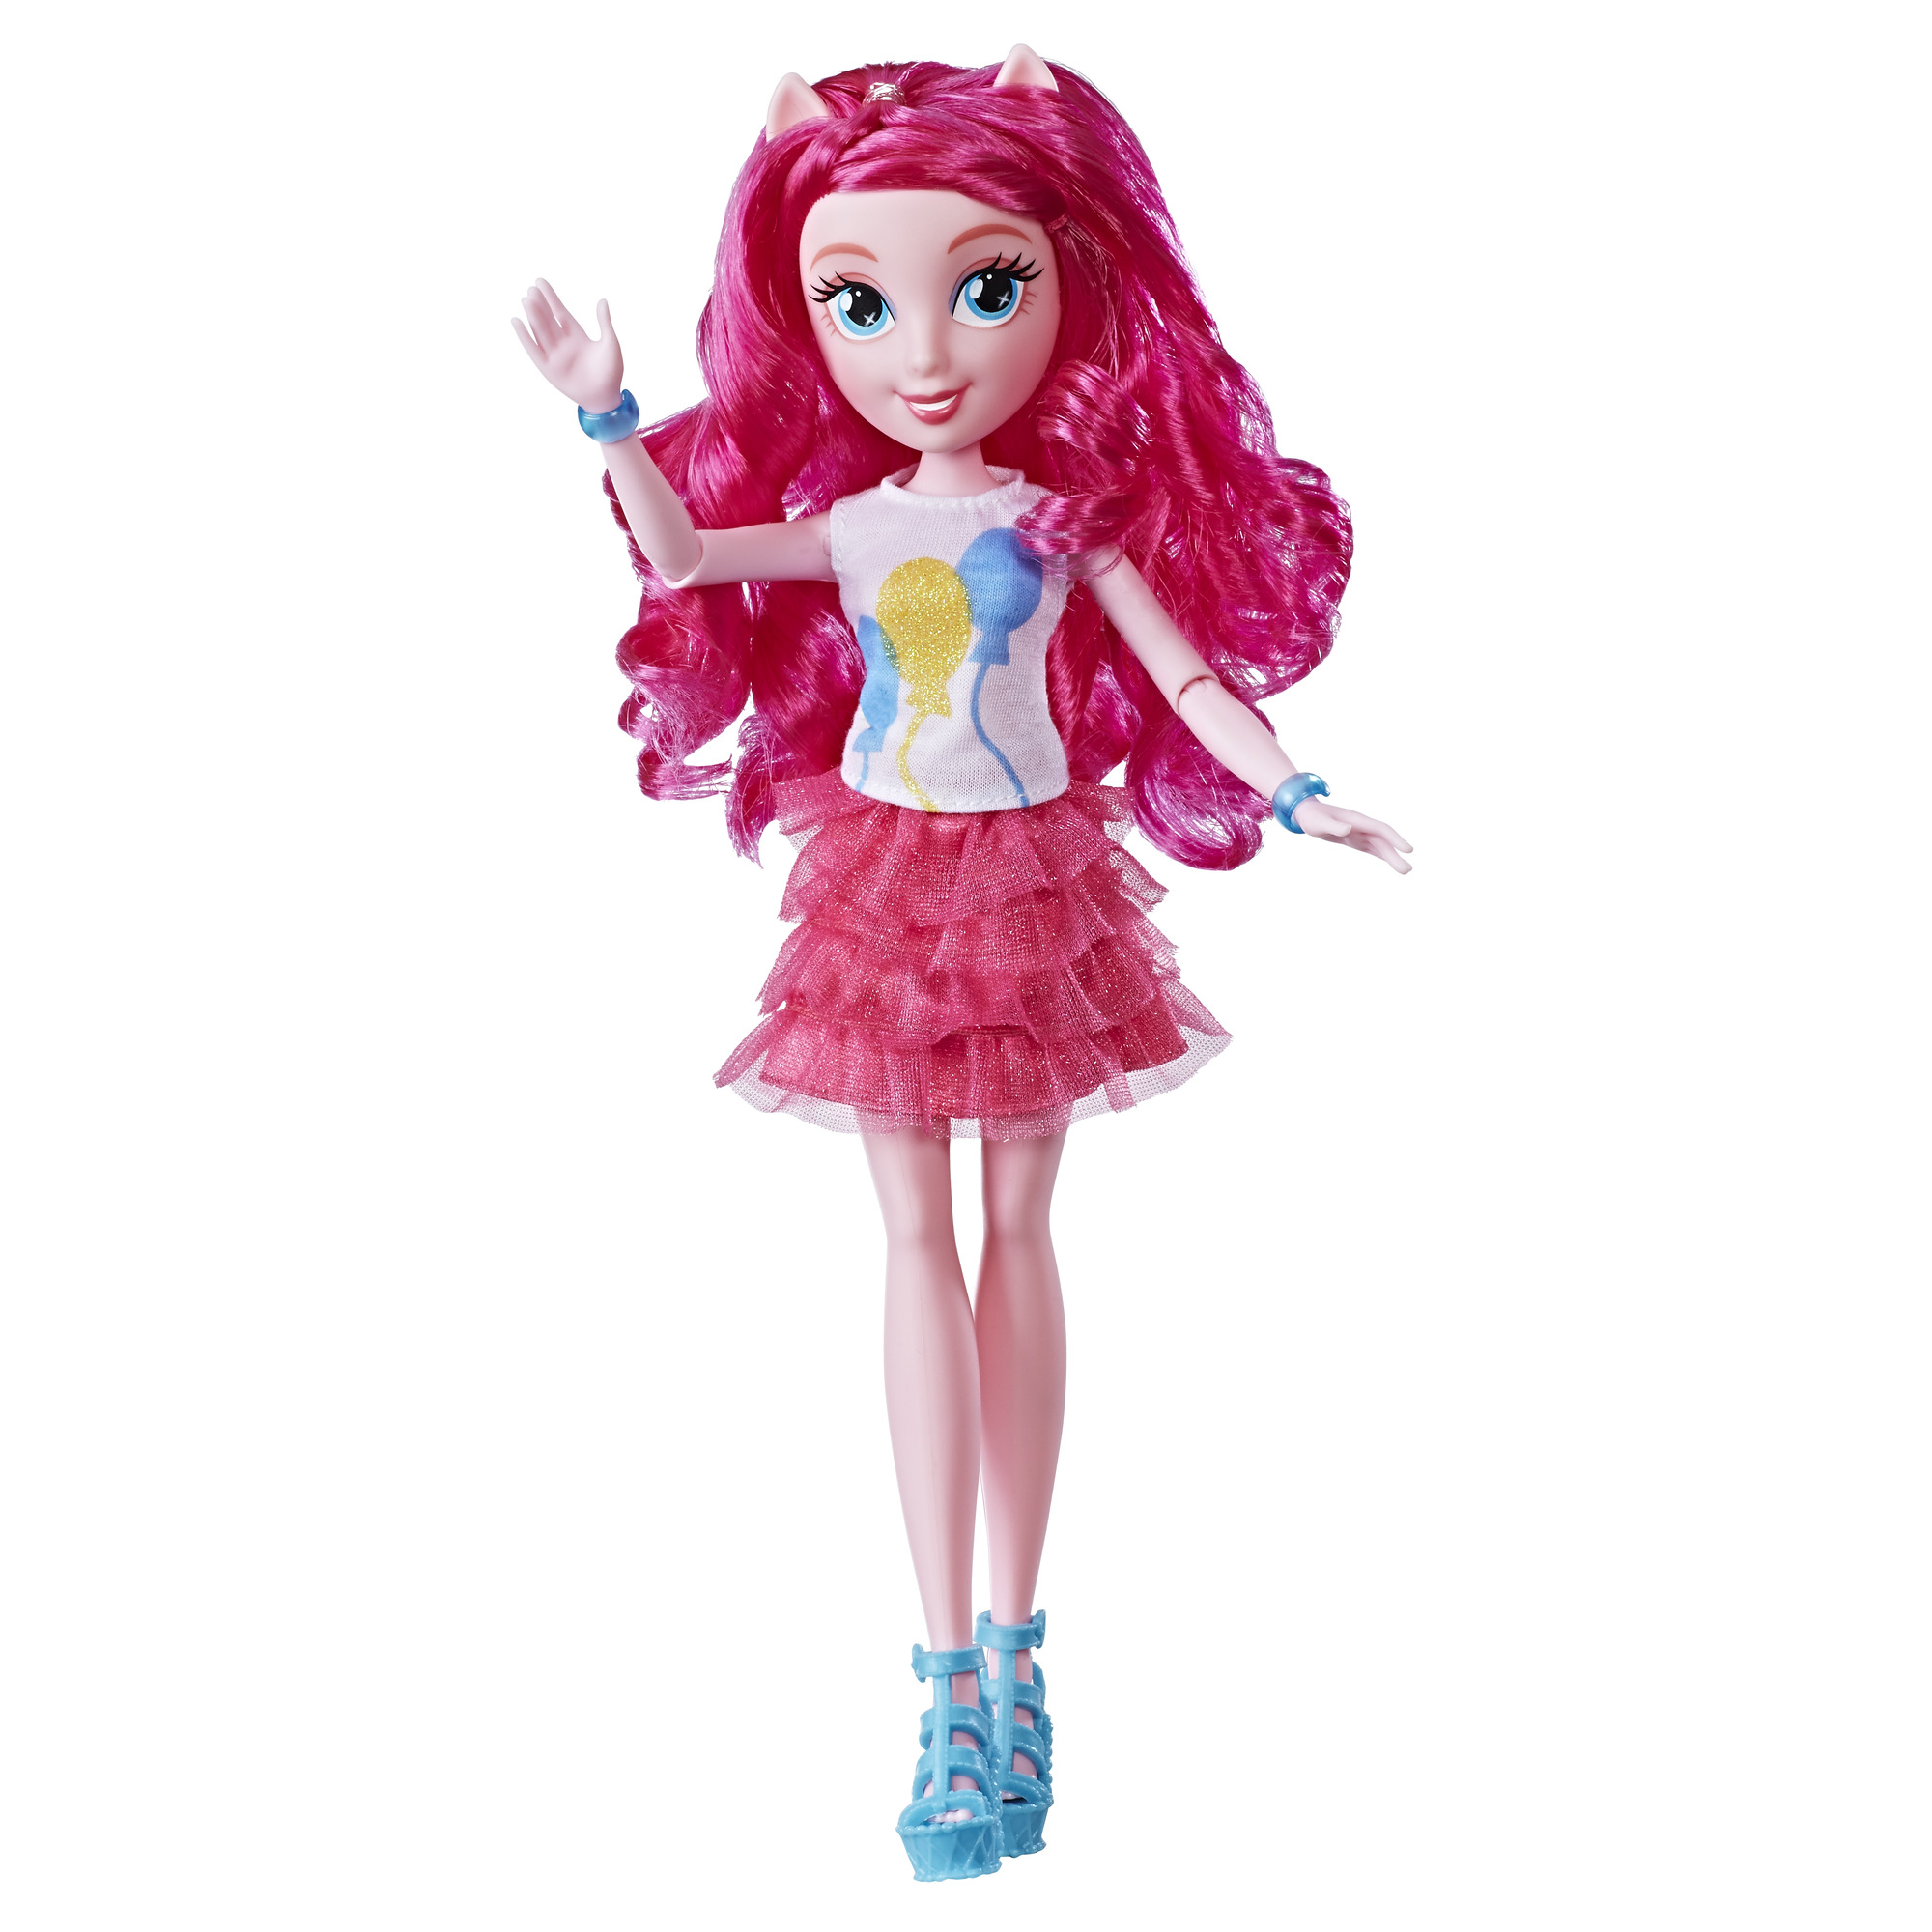 My Little Pony Equestria Girls Pinkie Pie Classic Style Doll by Hasbro